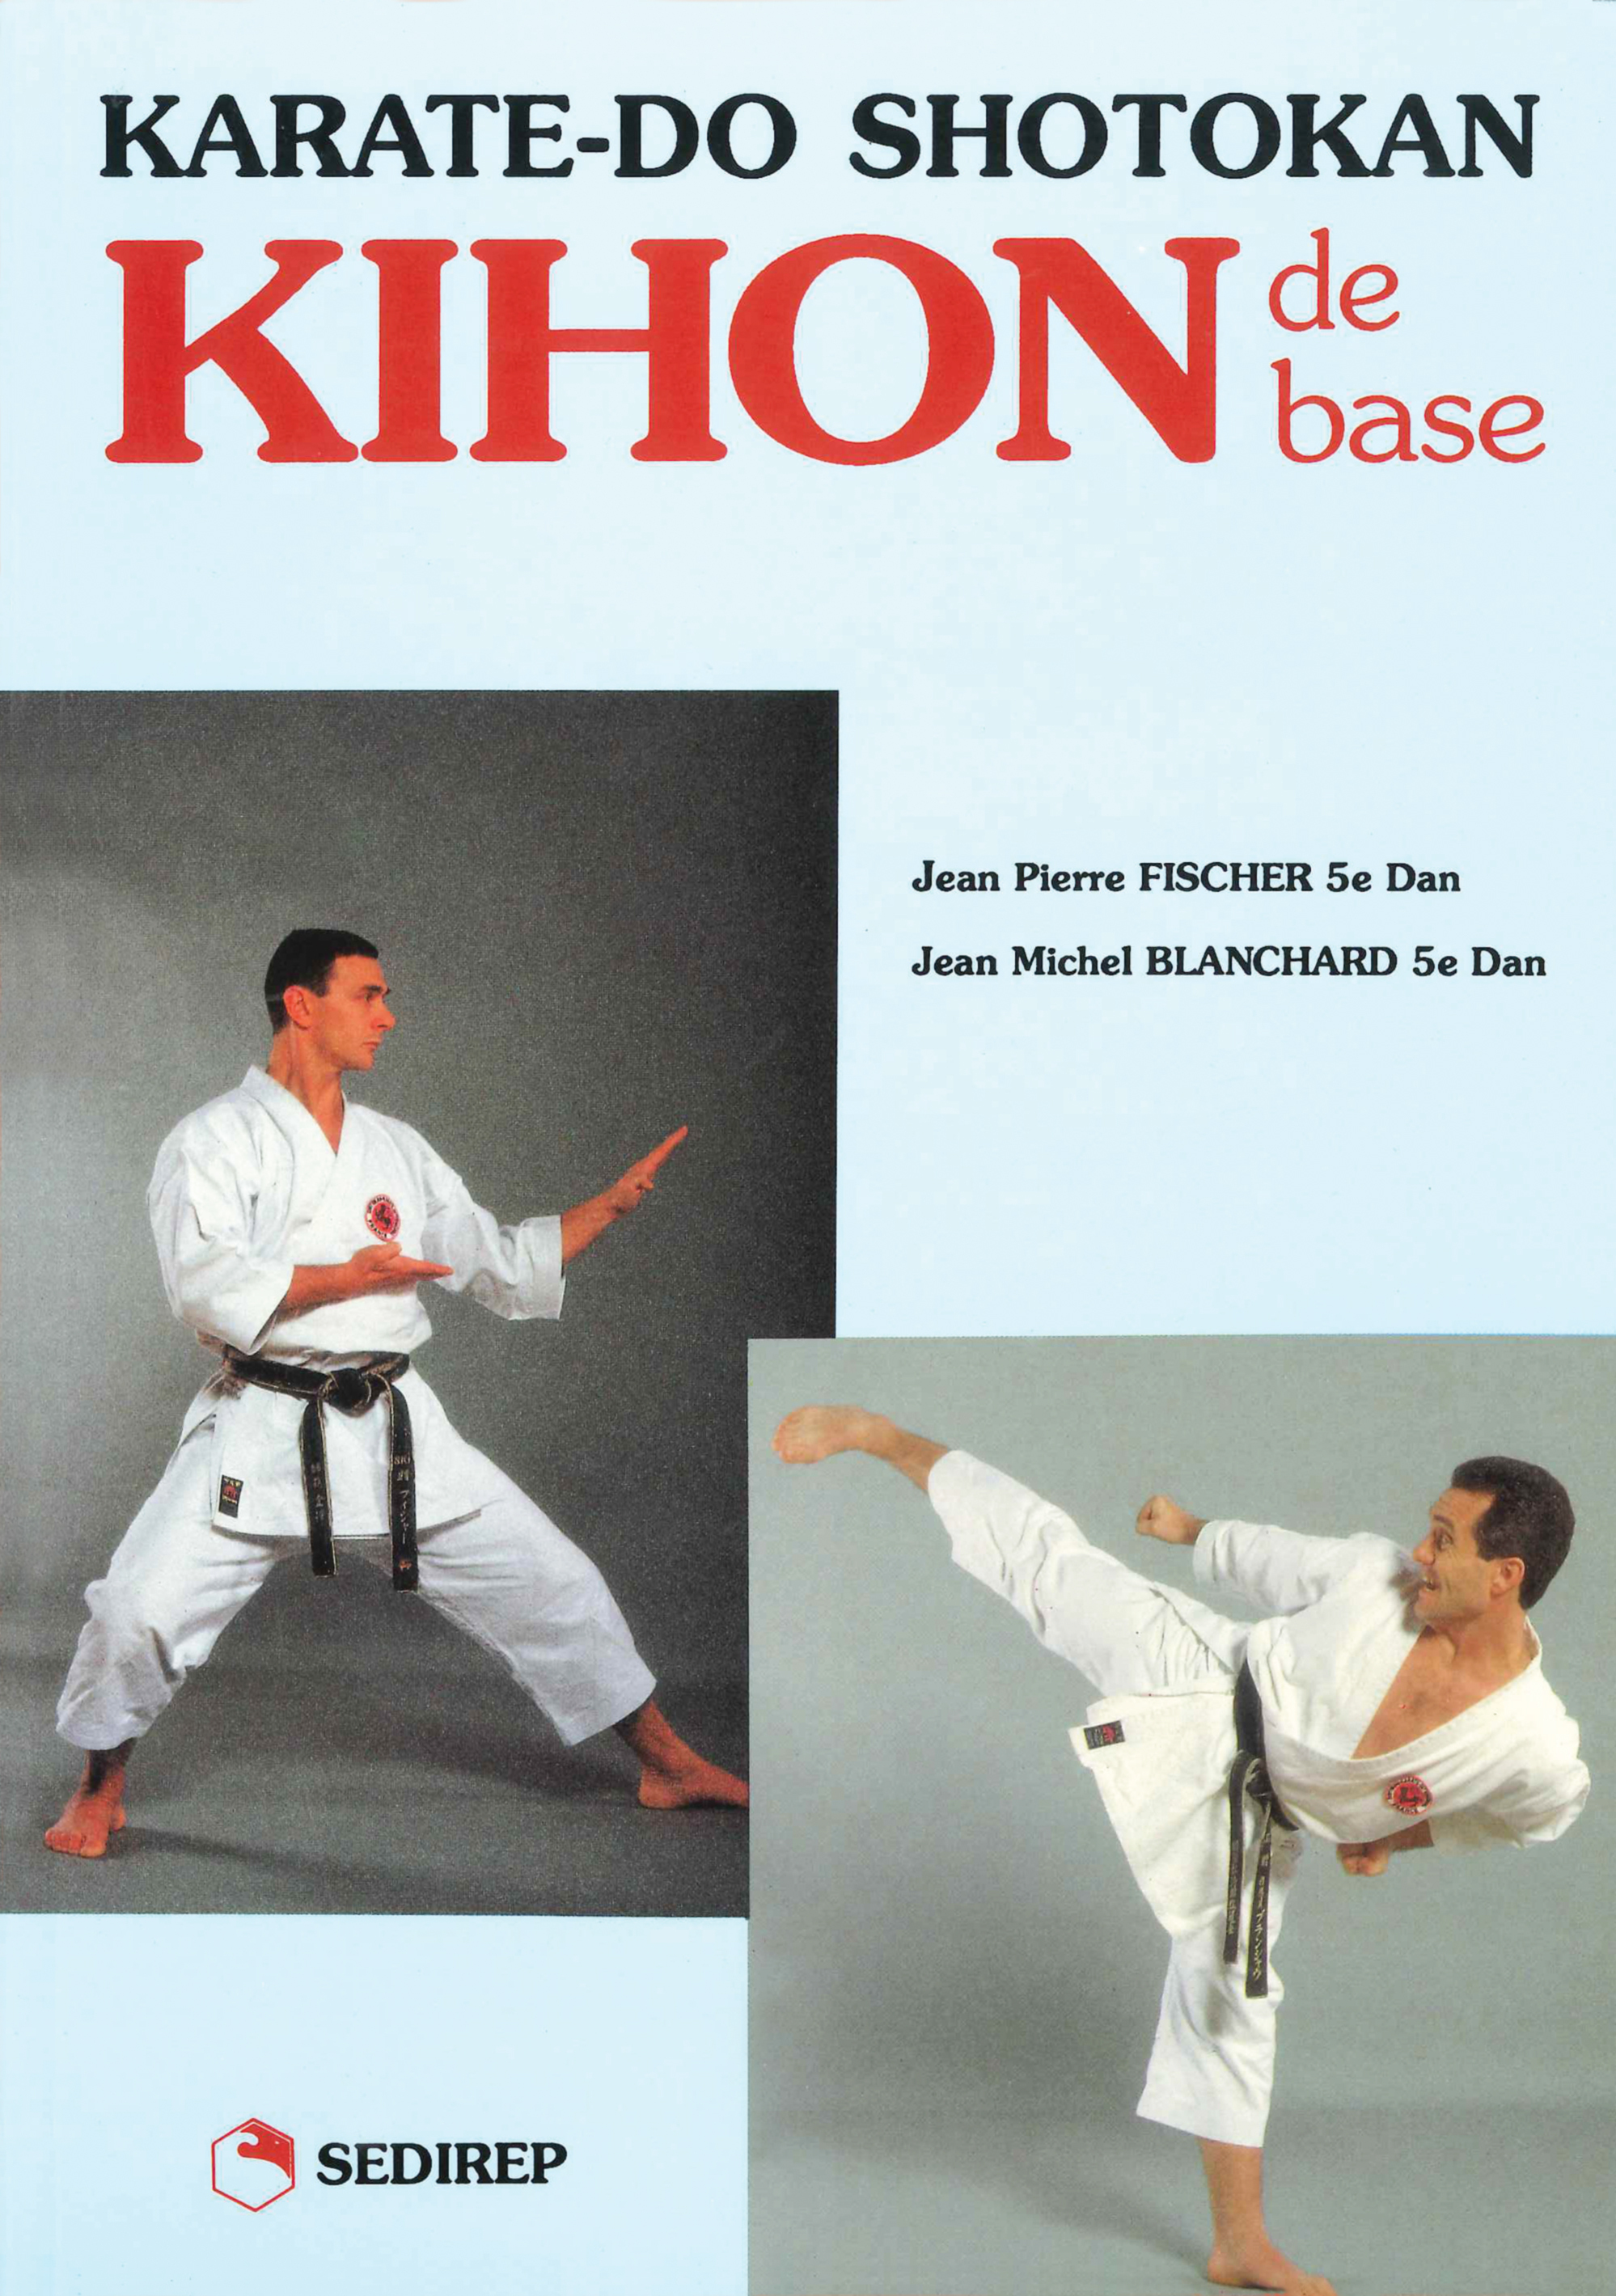 KARATE-DO SHOTOKAN KIHON DE BASE